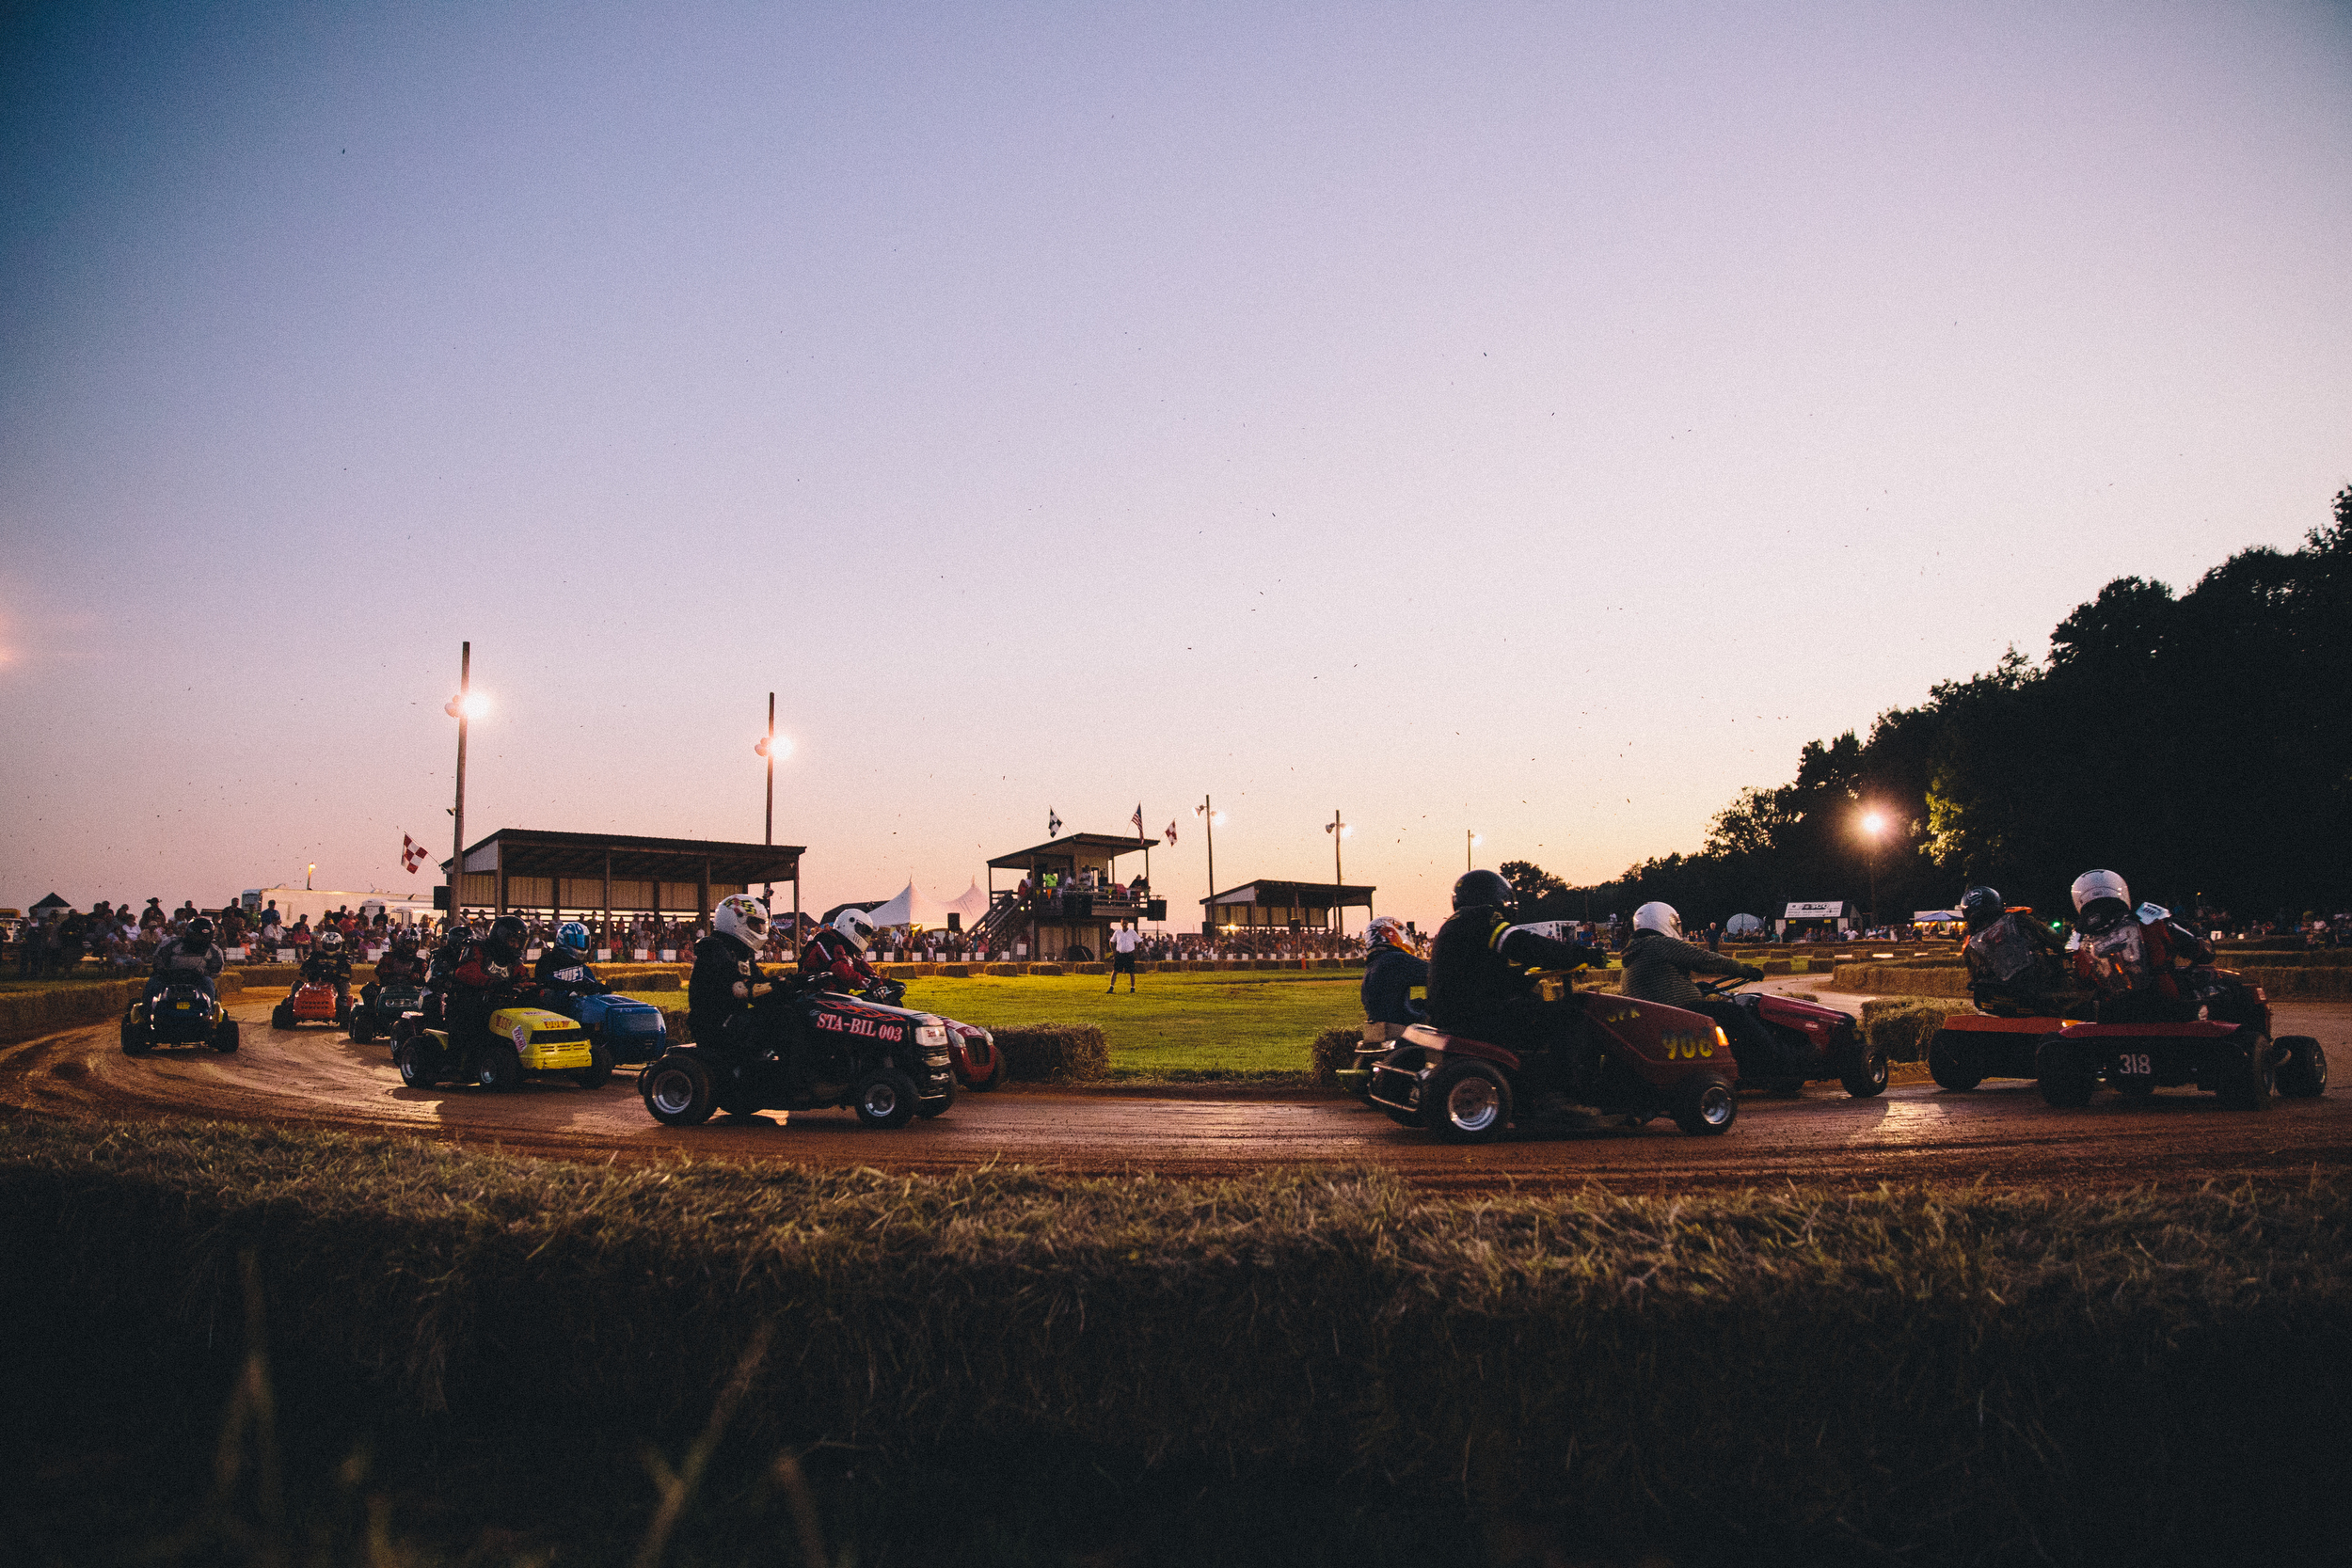 July 31, 2015 and Aug 1, 2015; Clements, MD, USA; Reportage from the STA-BIL National Lawn Mower Racing Series at Bowles Farm in Clements, MD. Racers posed for portraits, before and during practice heats. Racers competed in at least 10 different mower classes on a 700 ft long dirt track. The course is surrounded by cornfields. Mandatory Credit: Brian Schneider-www.ebrianschneider.comInstagram - @ebrianschneiderTwitter - @brian_schneiderFacebook - Facebook.com/ebrianschneider or Facebook.com/brianschneiderphotography